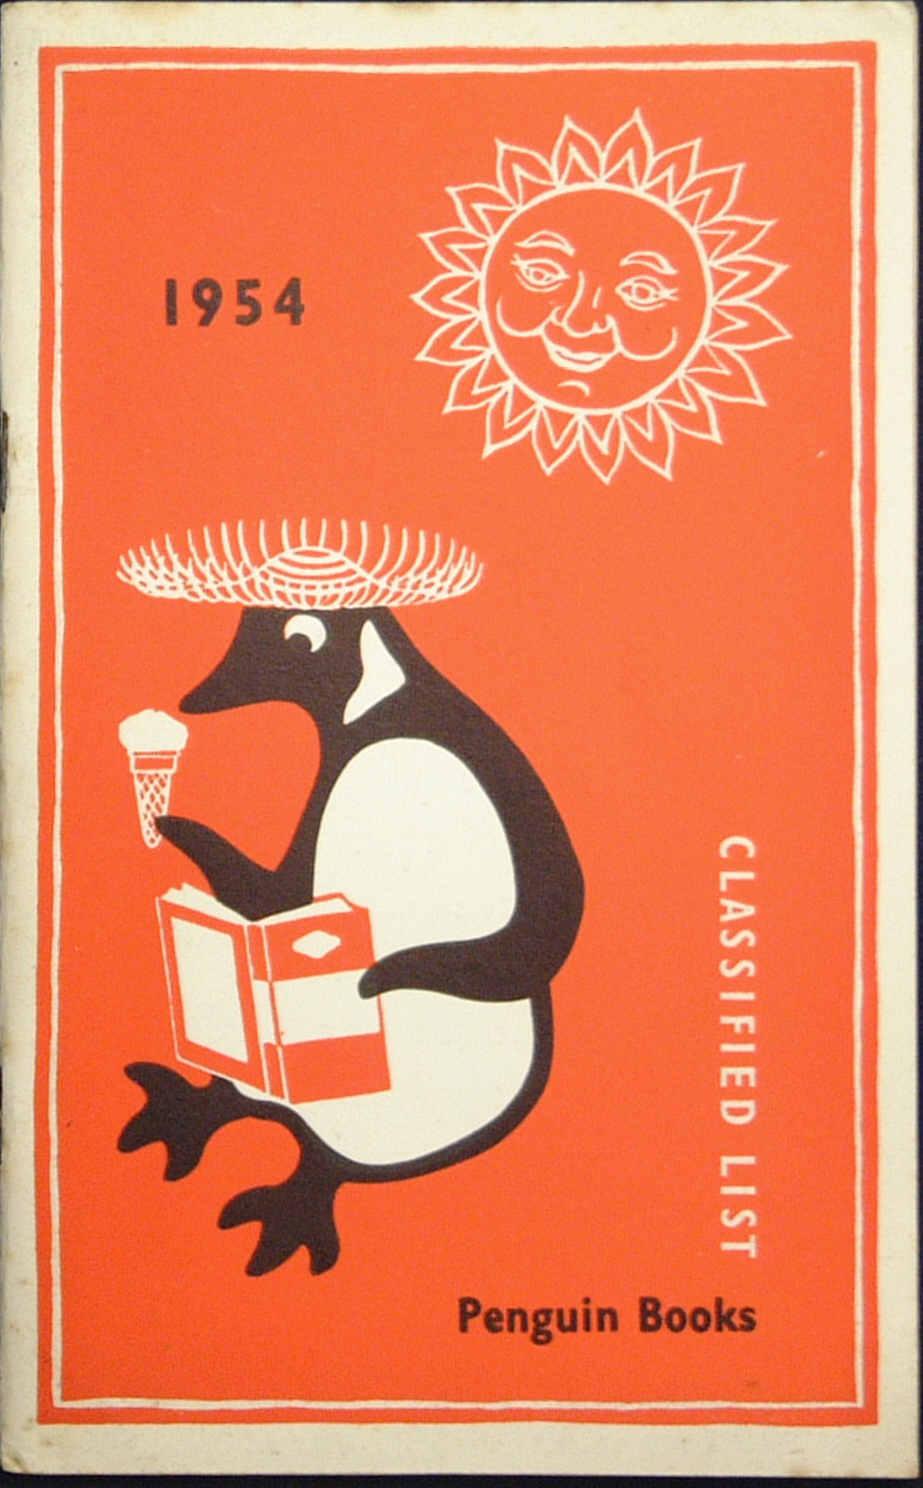 Create Your Own Penguin Book Cover : Images about vintage advertiseing on pinterest